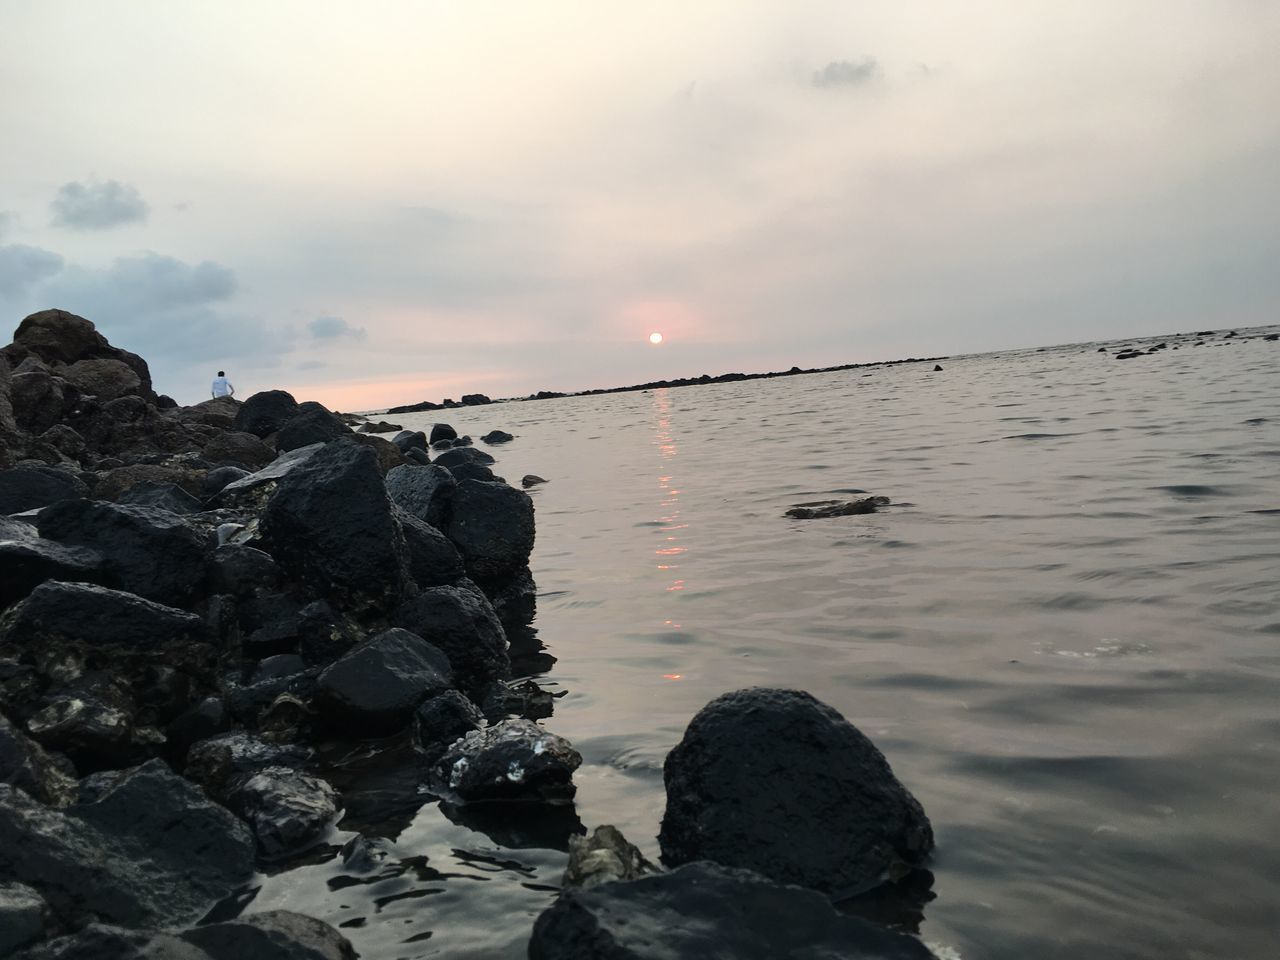 sunset, sea, water, nature, sky, beauty in nature, rock - object, tranquility, sun, tranquil scene, scenics, beach, cloud - sky, horizon over water, outdoors, no people, wave, day